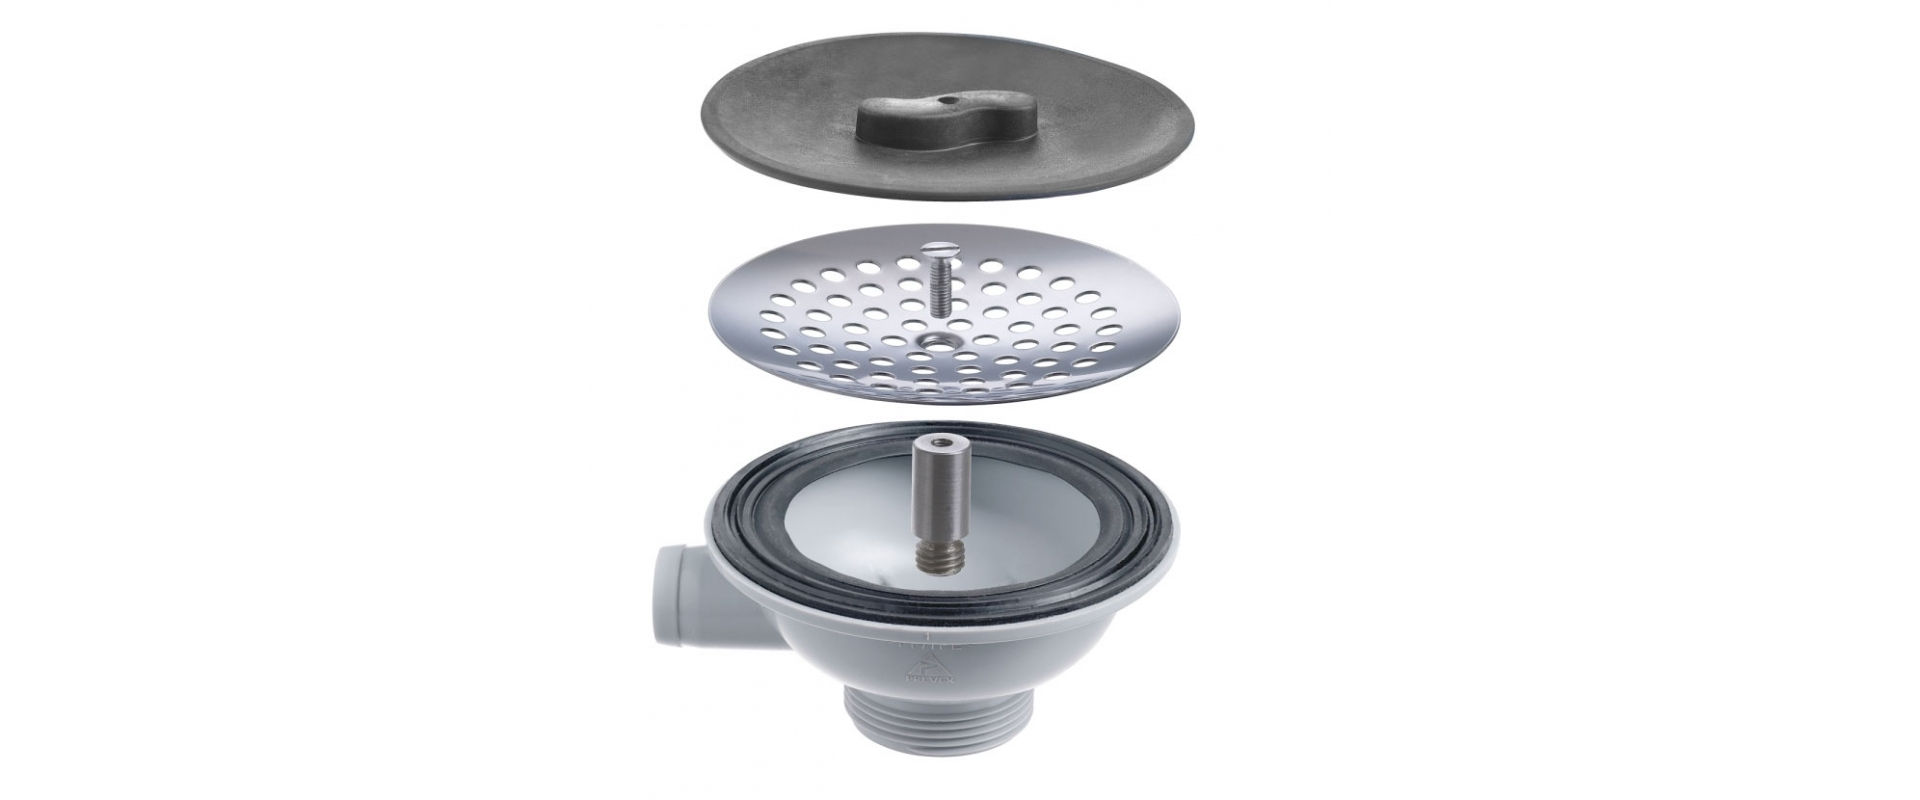 Strainer package for sinks